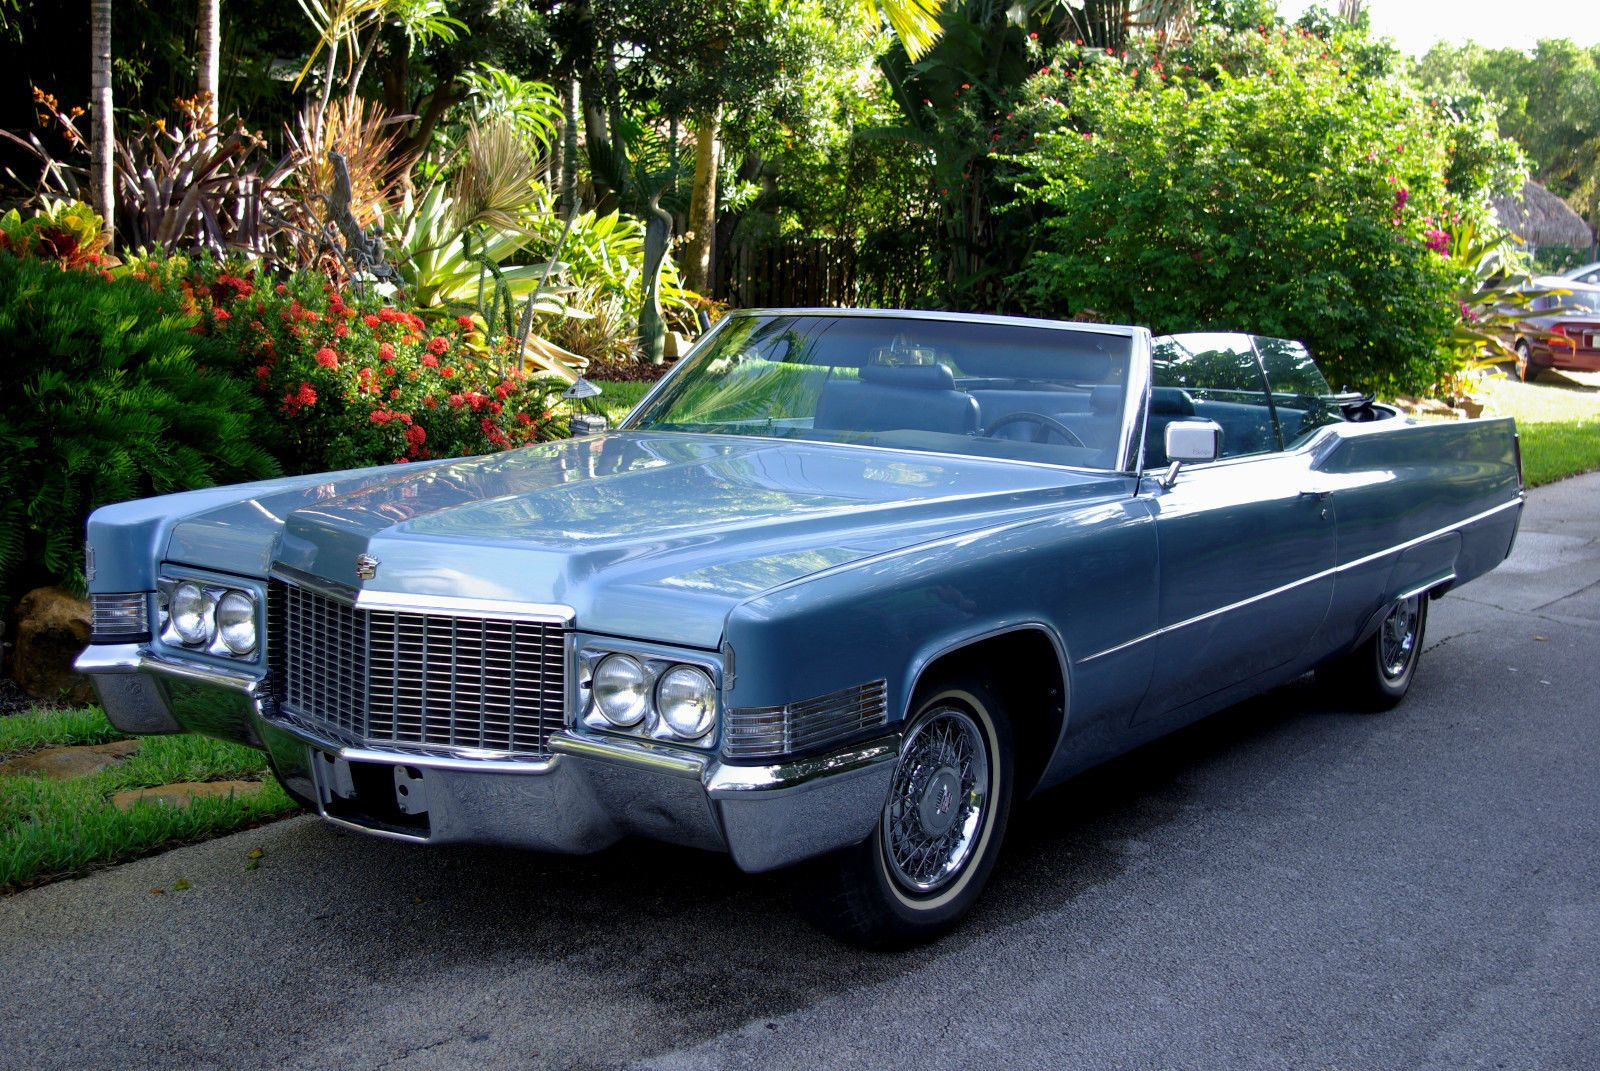 1970 Cadillac Coupe DeVille Convertible Maintenance of old vehicles ...